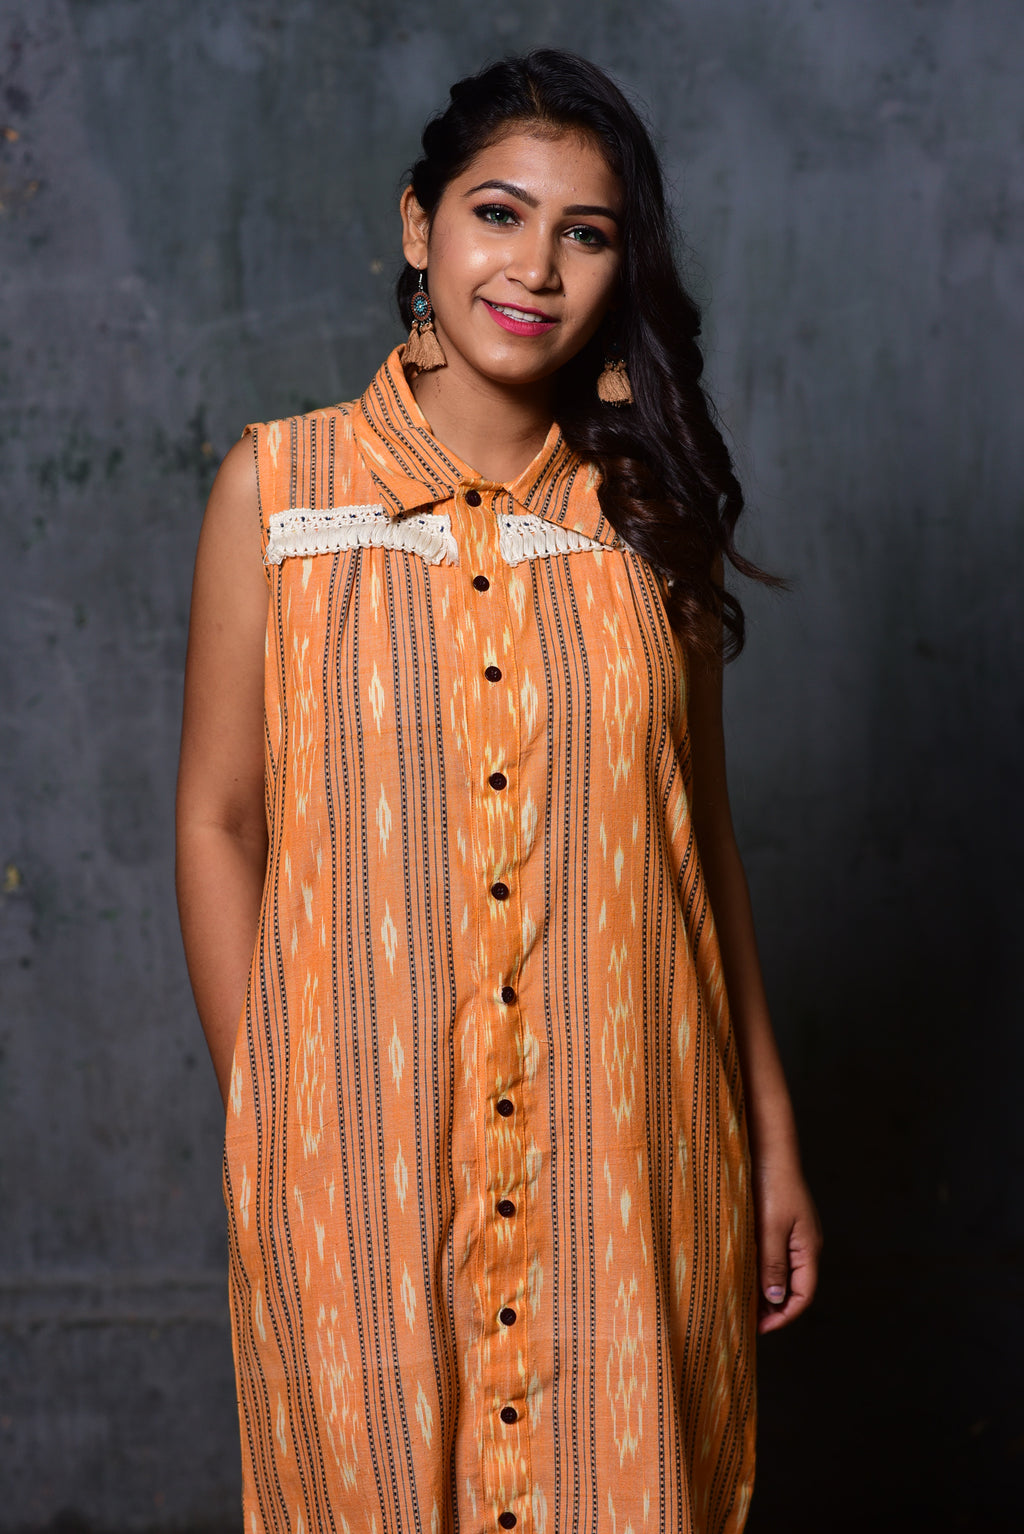 Apricot yellow ikat sleevelss shirt dress with lace detail and shirt collar